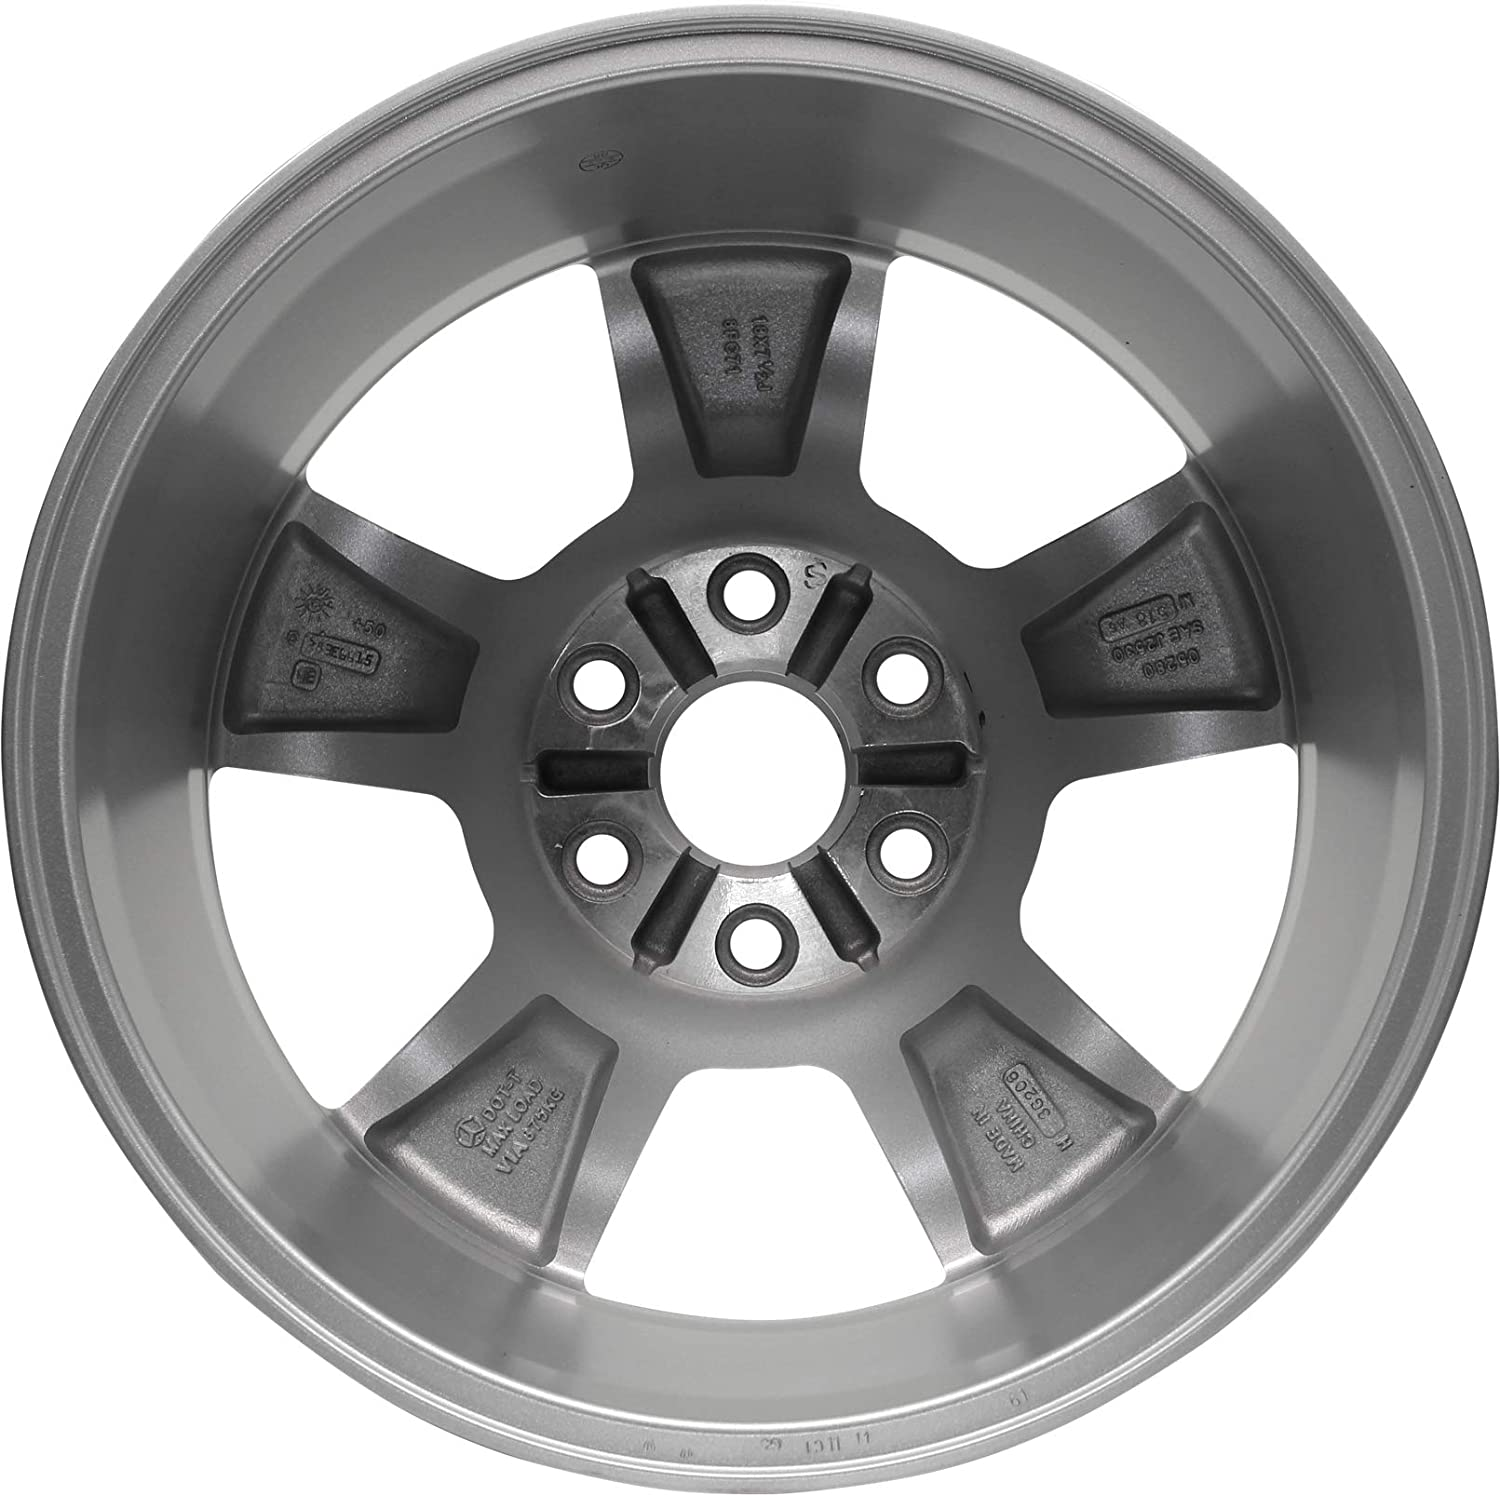 Partsynergy Replacement For New Aluminum Alloy Wheel Rim 18 Inch Fits 2007-2008 GMC Acadia 6-134mm 5 Spokes